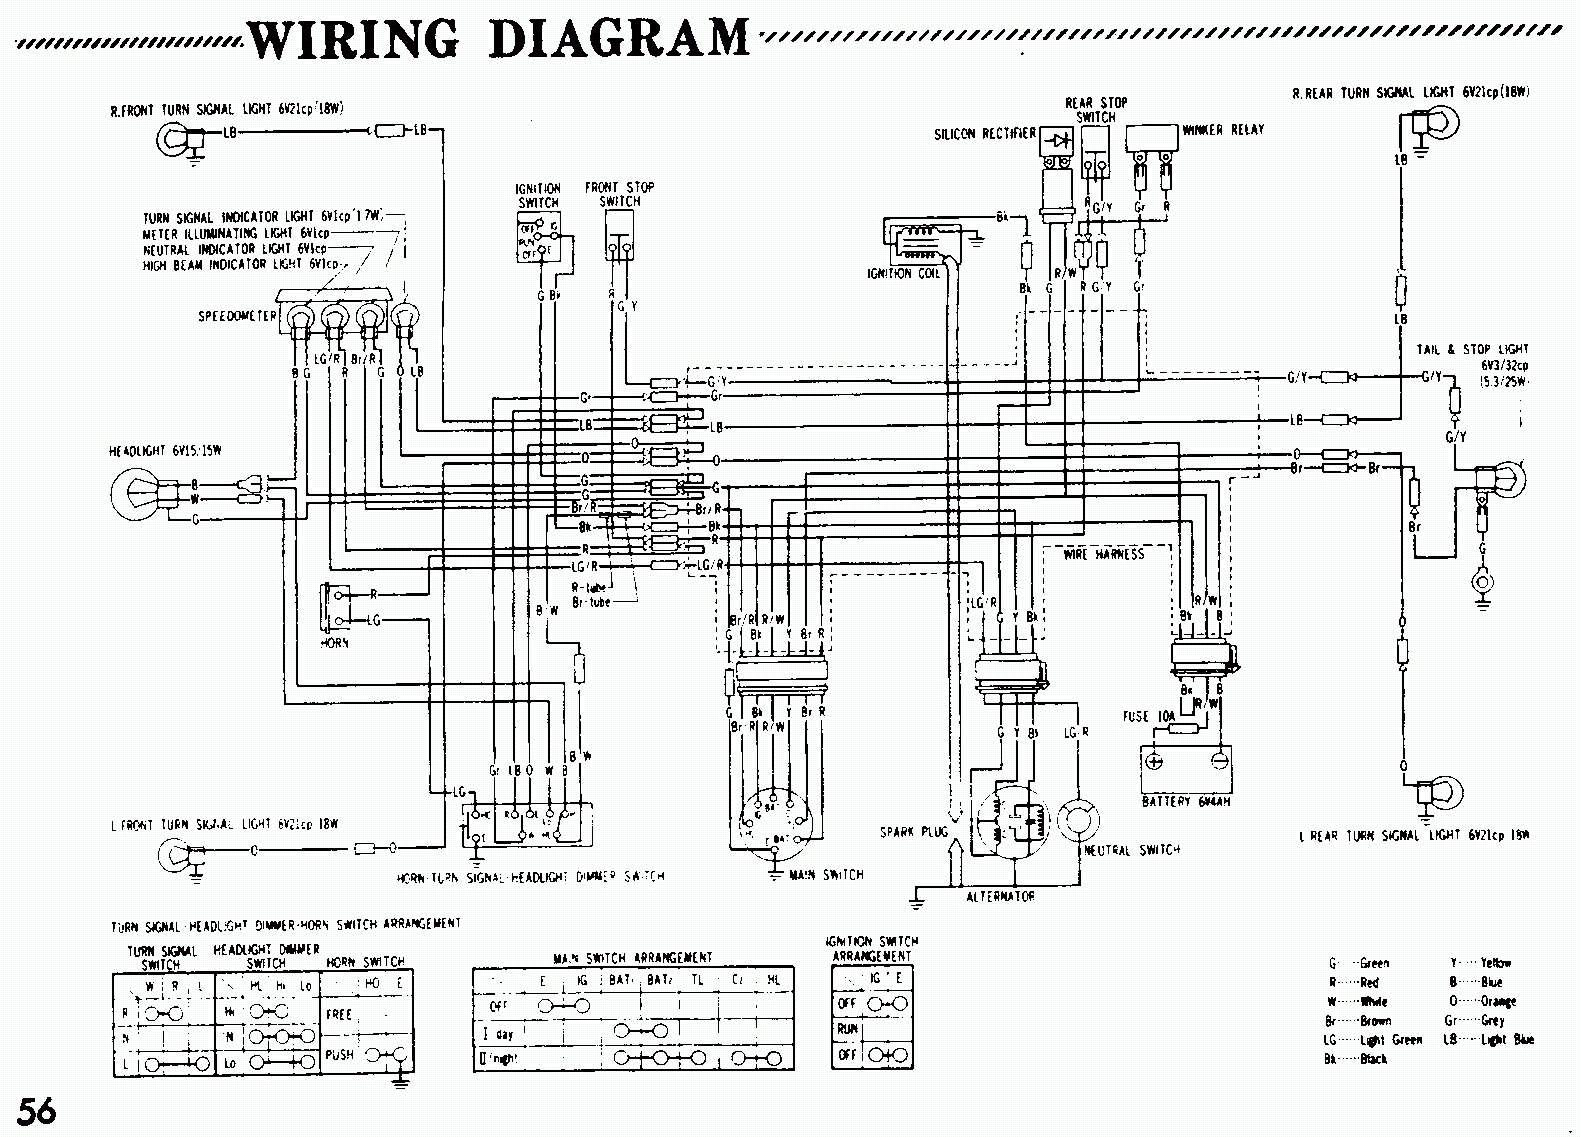 Honda Ct70 Wiring Diagram: TBolt USA Tech Database - TBolt USA LLC,Design